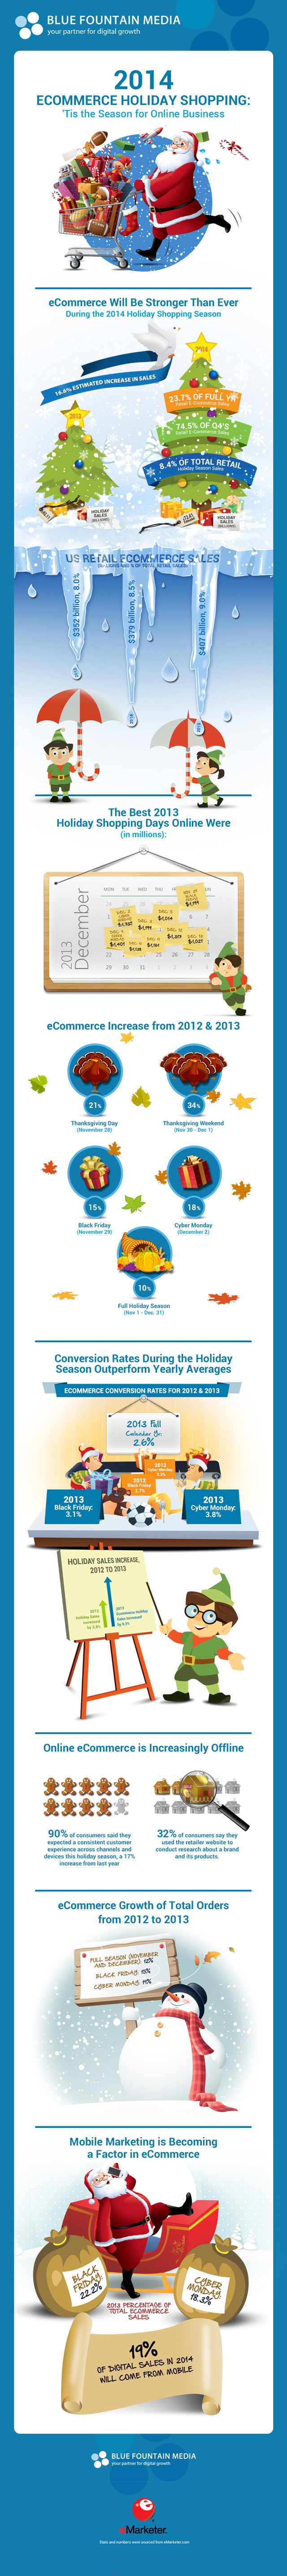 Ecommerce Holiday Shopping The Season for Online Shopping